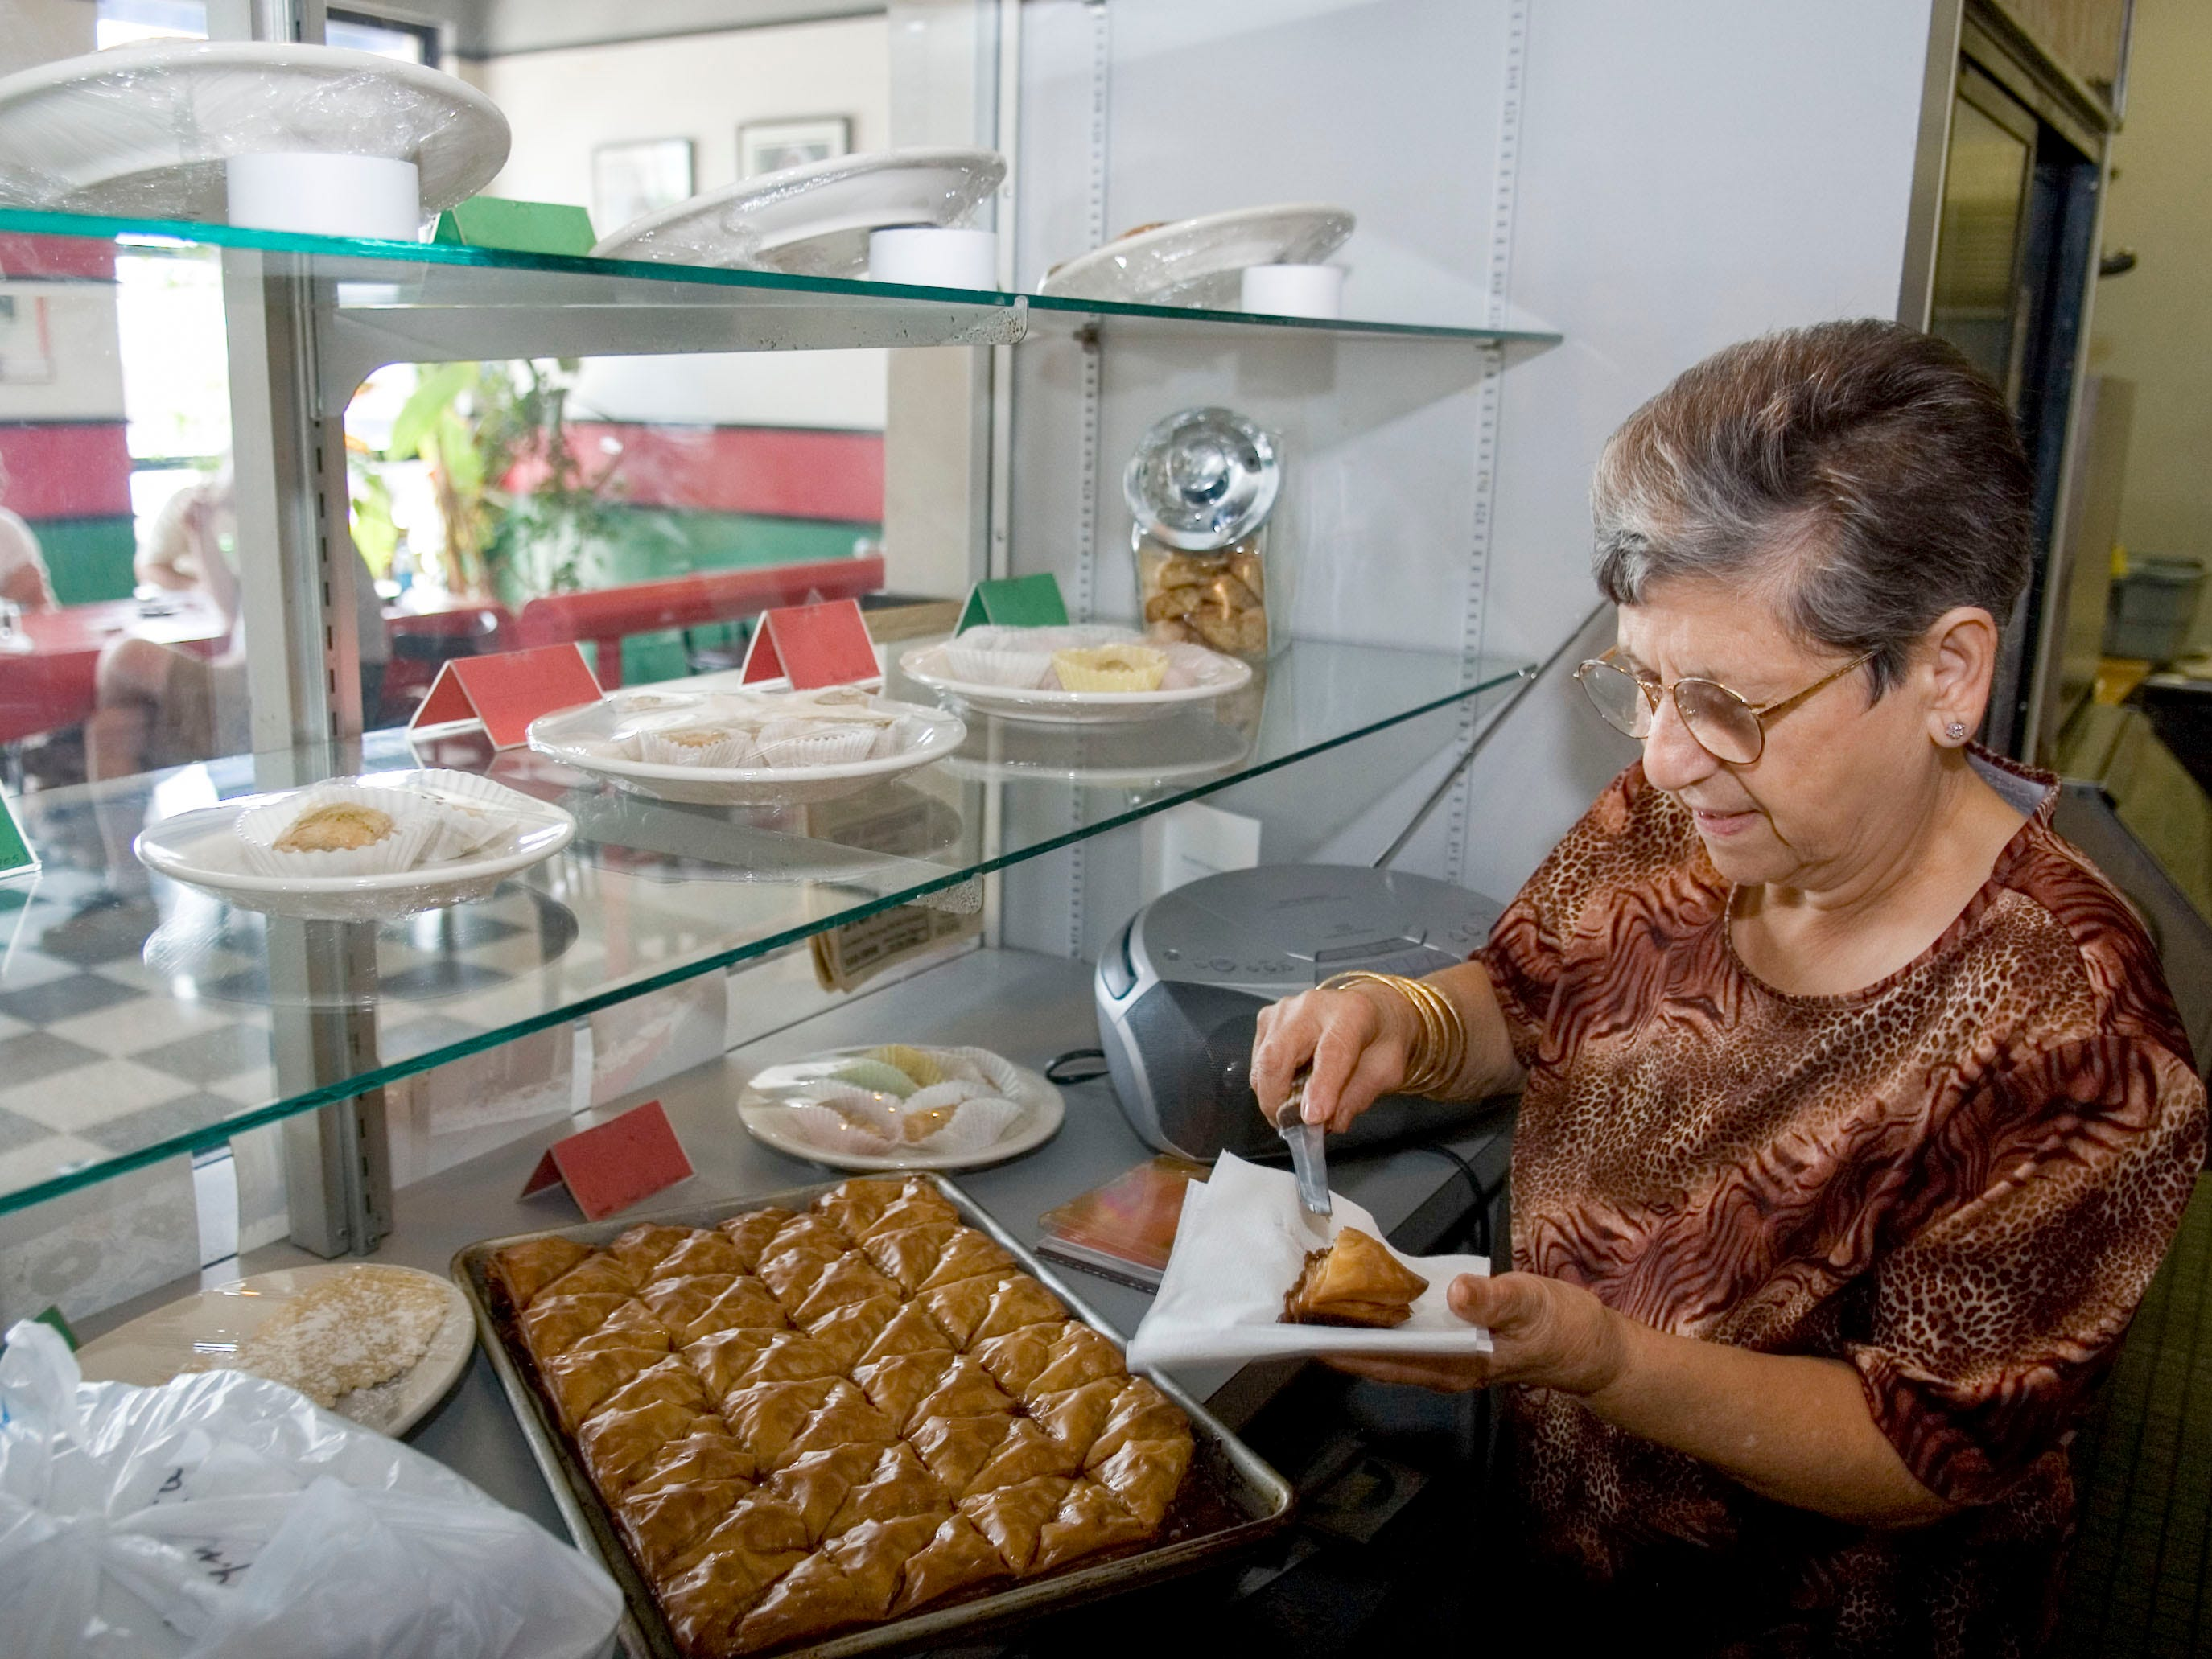 The Falafel Hut founder Renee Jubran in 2007.